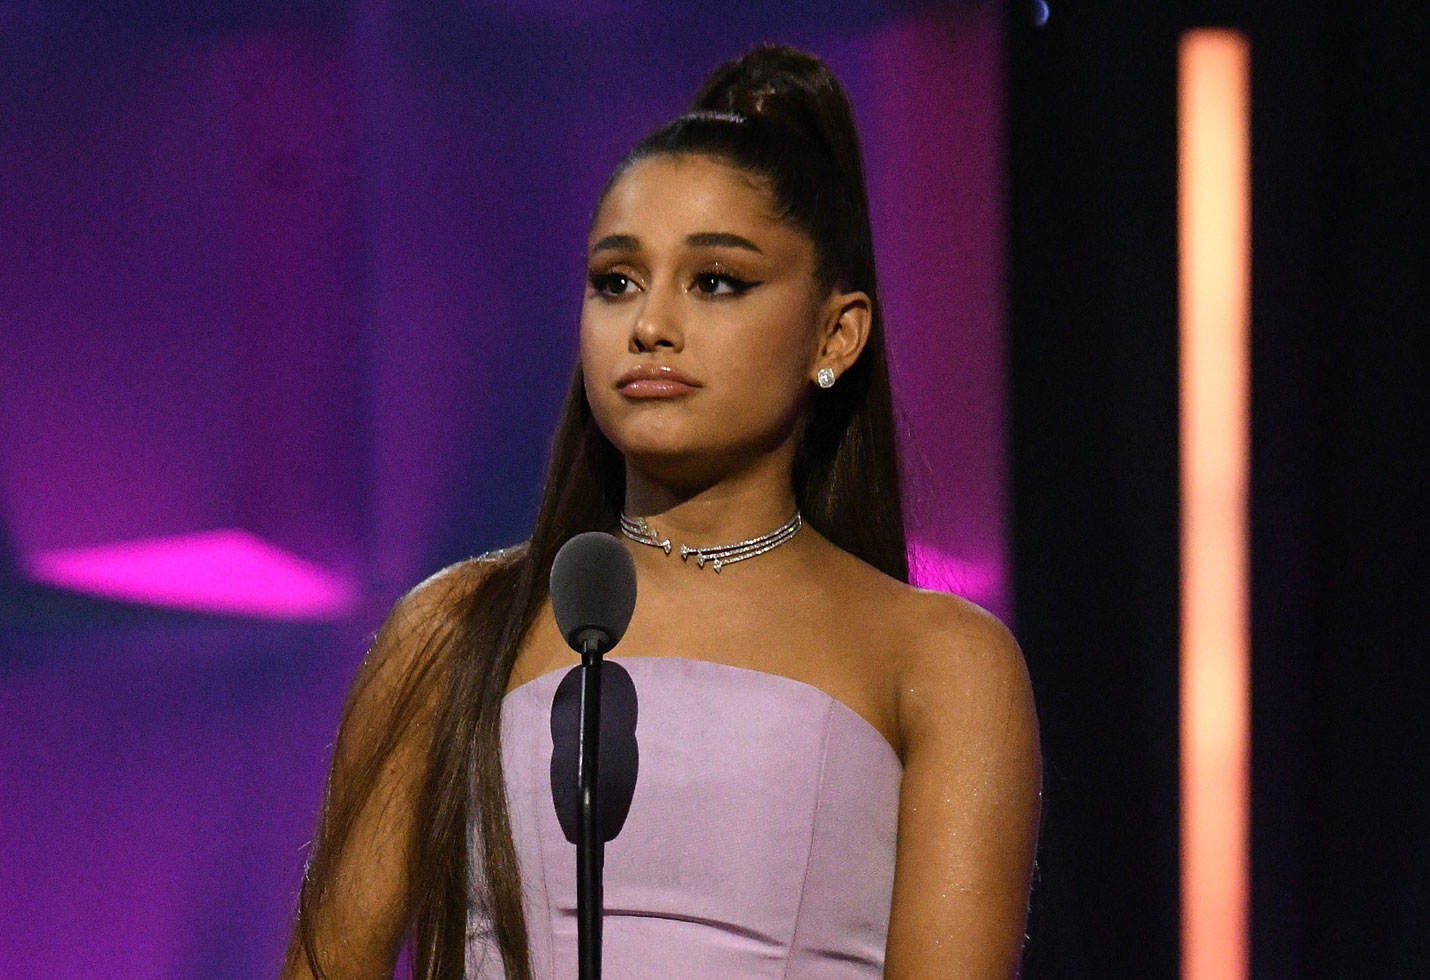 Tearful Ariana Grande Calls 2018 'Worst' Year In Her Life